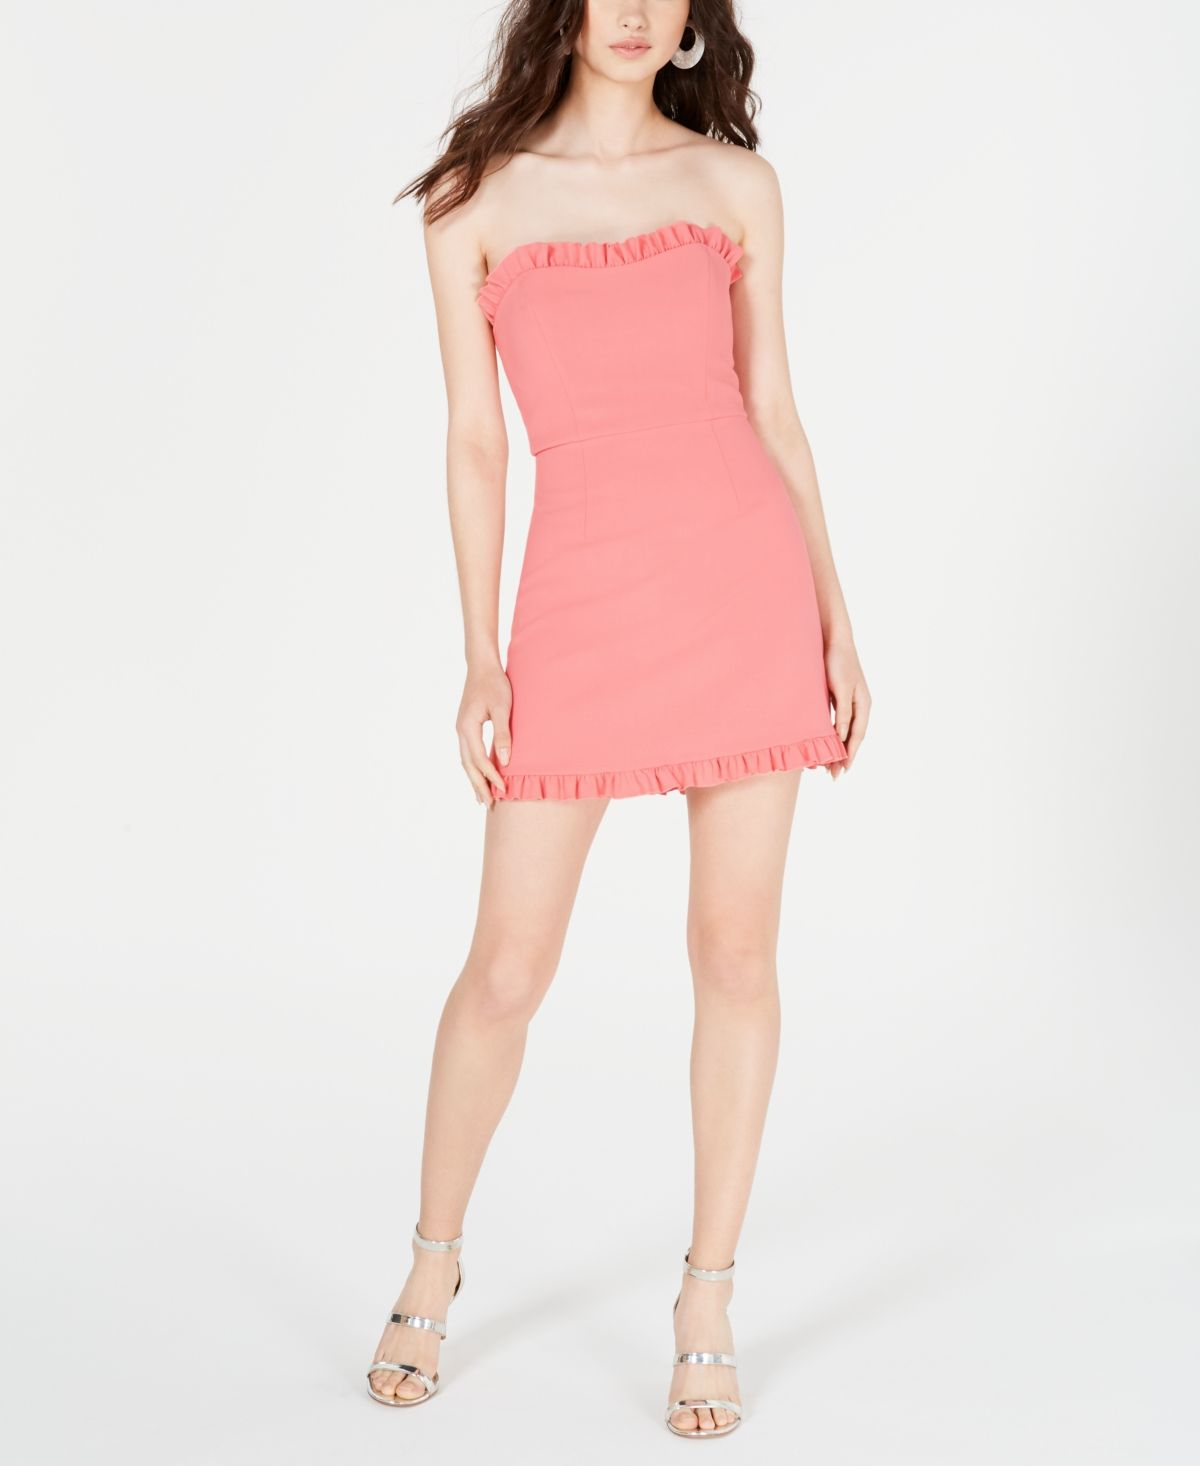 French Connection Ruffled Strapless Dress Pink Whip Strapless Ruffle Dress Dresses Review Dresses [ 1466 x 1200 Pixel ]